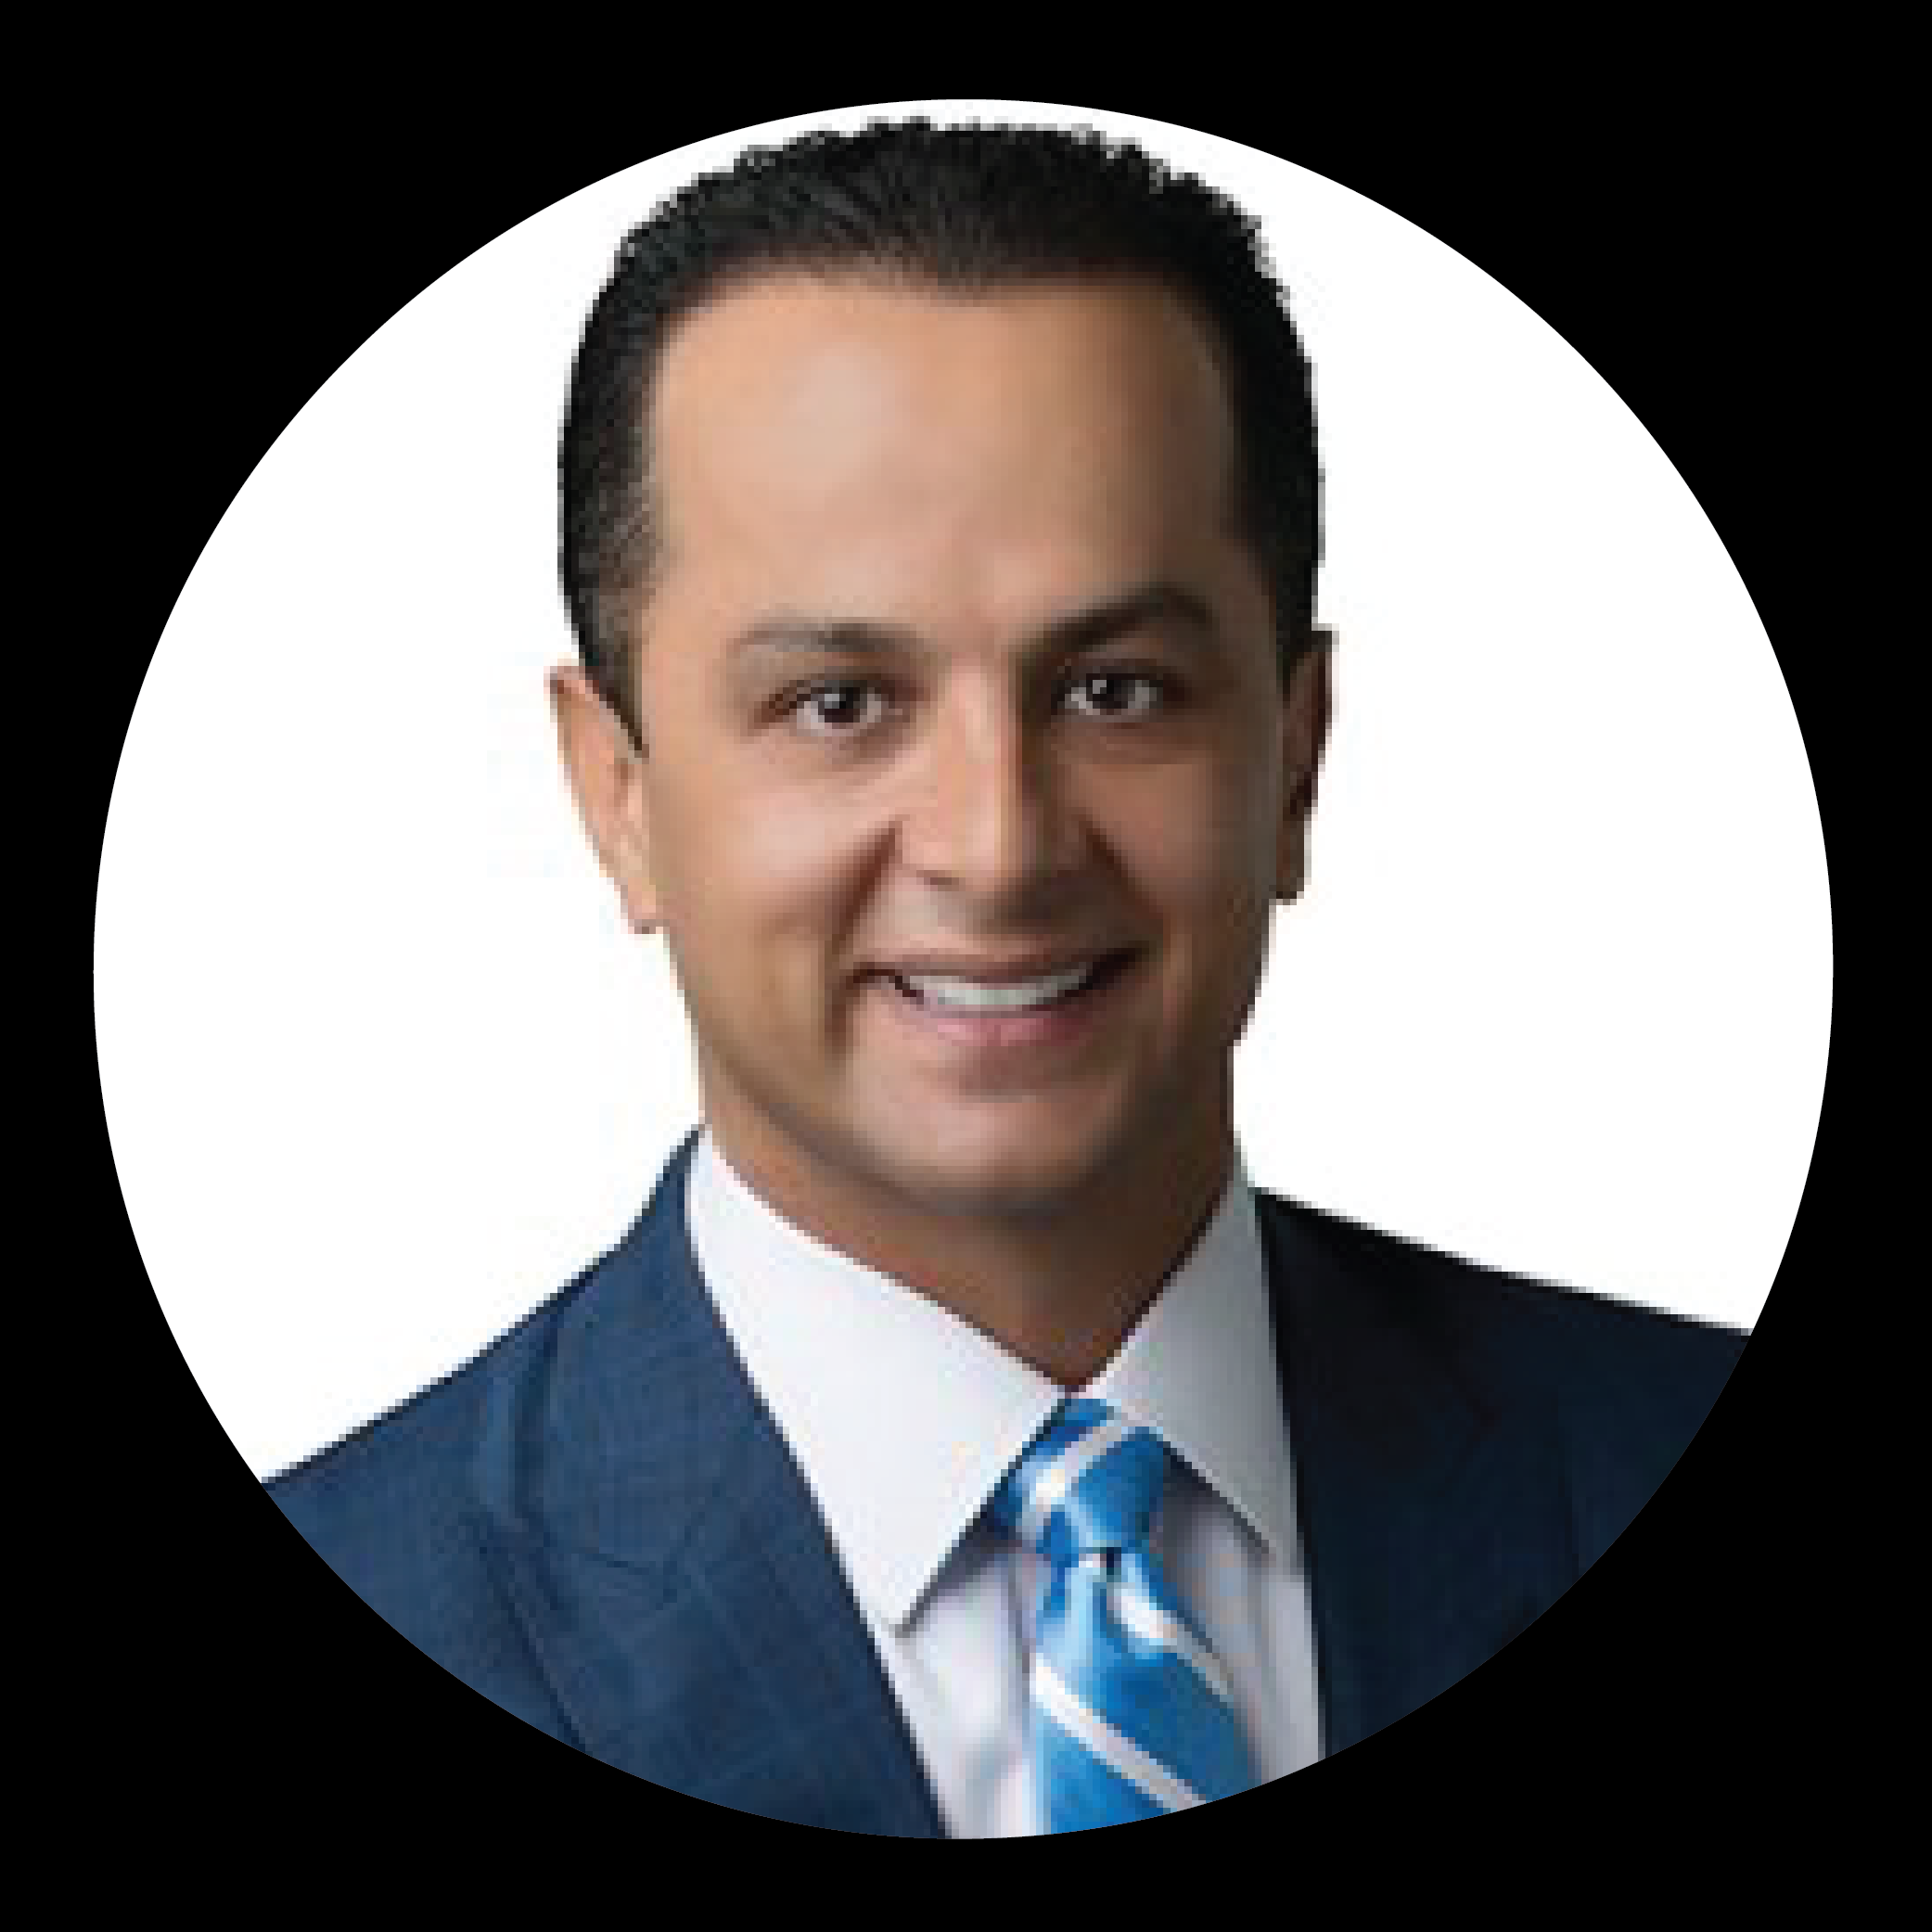 Waleed Delawari, CEO -Delaware Pacific    Waleed Delawari is one of California's leading mortgage professionals. Since opening his own brokerage firm in 2001, Waleed has successfully closed over one billion dollars in mortgage loans and helped thousands of borrowers and sellers.